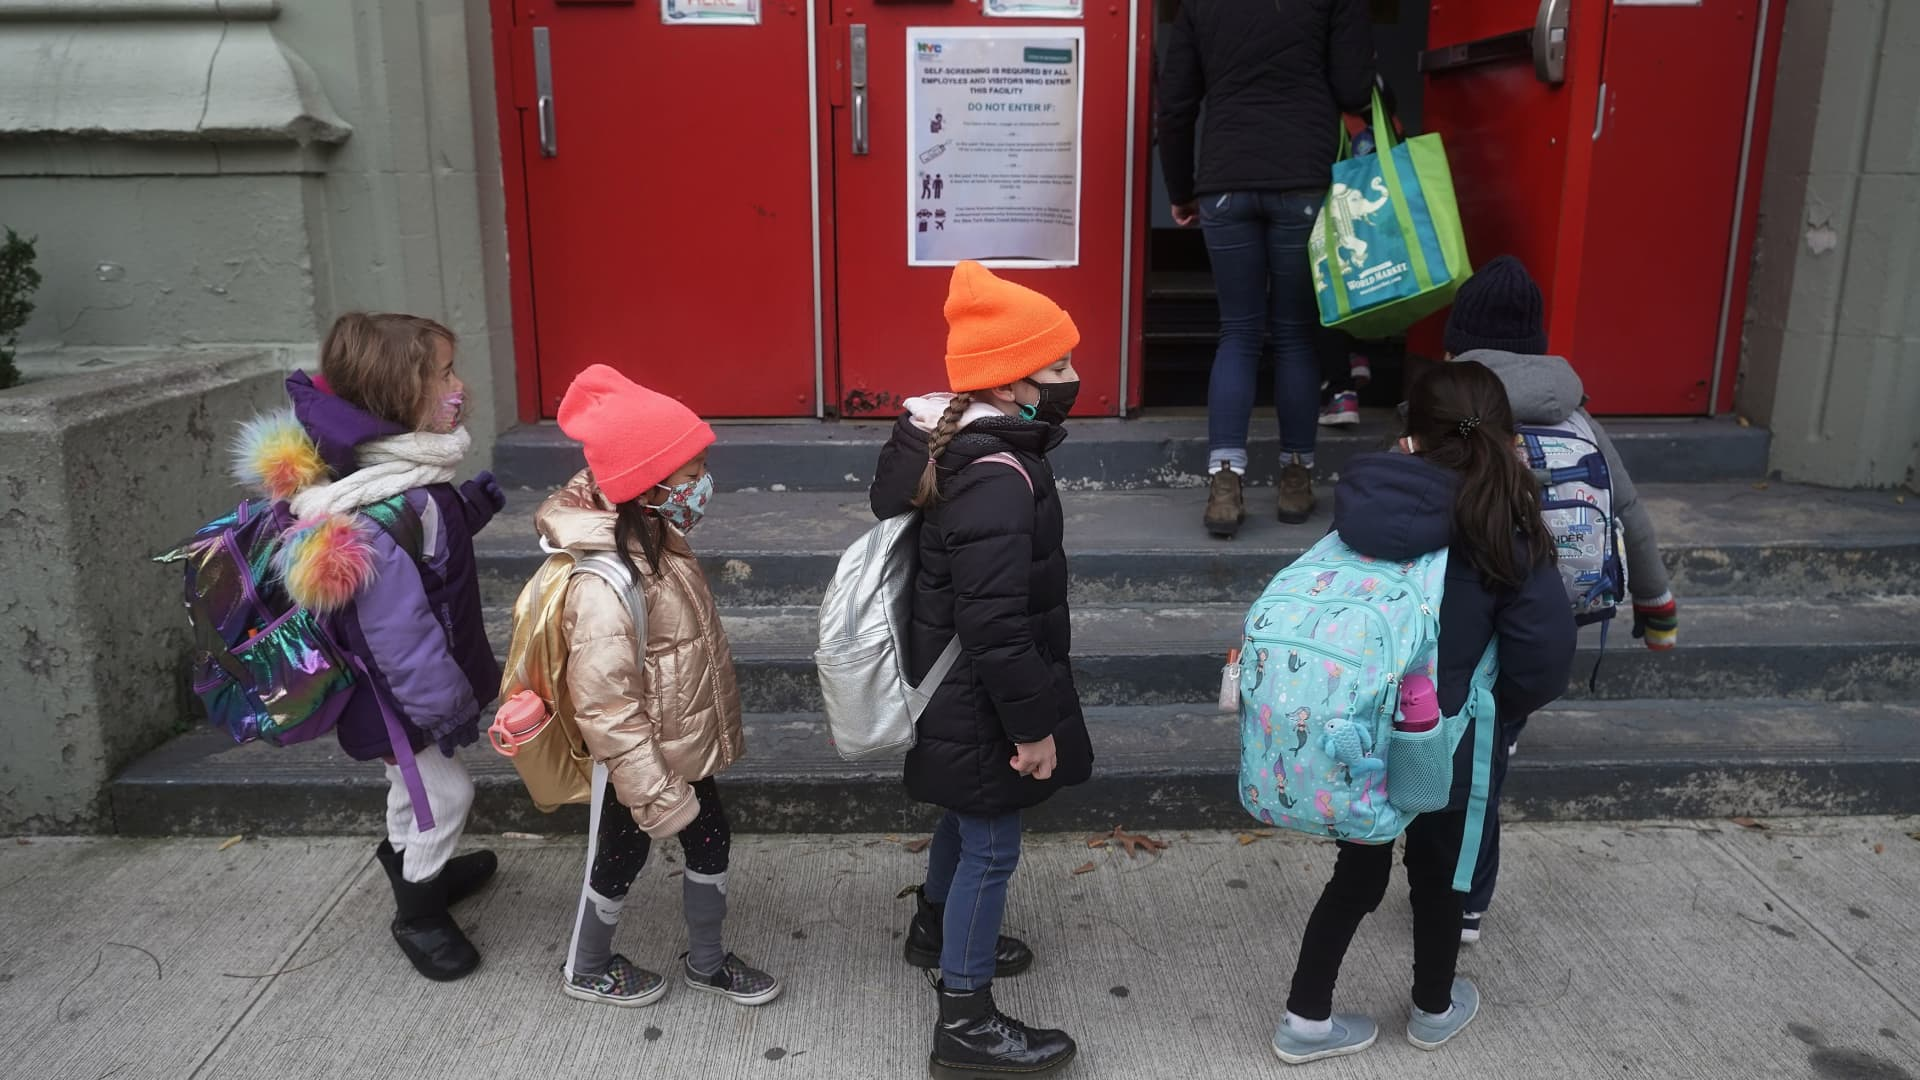 Children line up to attend class at PS 361 on the first day of a return to class during the coronavirus disease (COVID-19) pandemic in the Manhattan borough of New York City, New York, U.S., December 7, 2020.